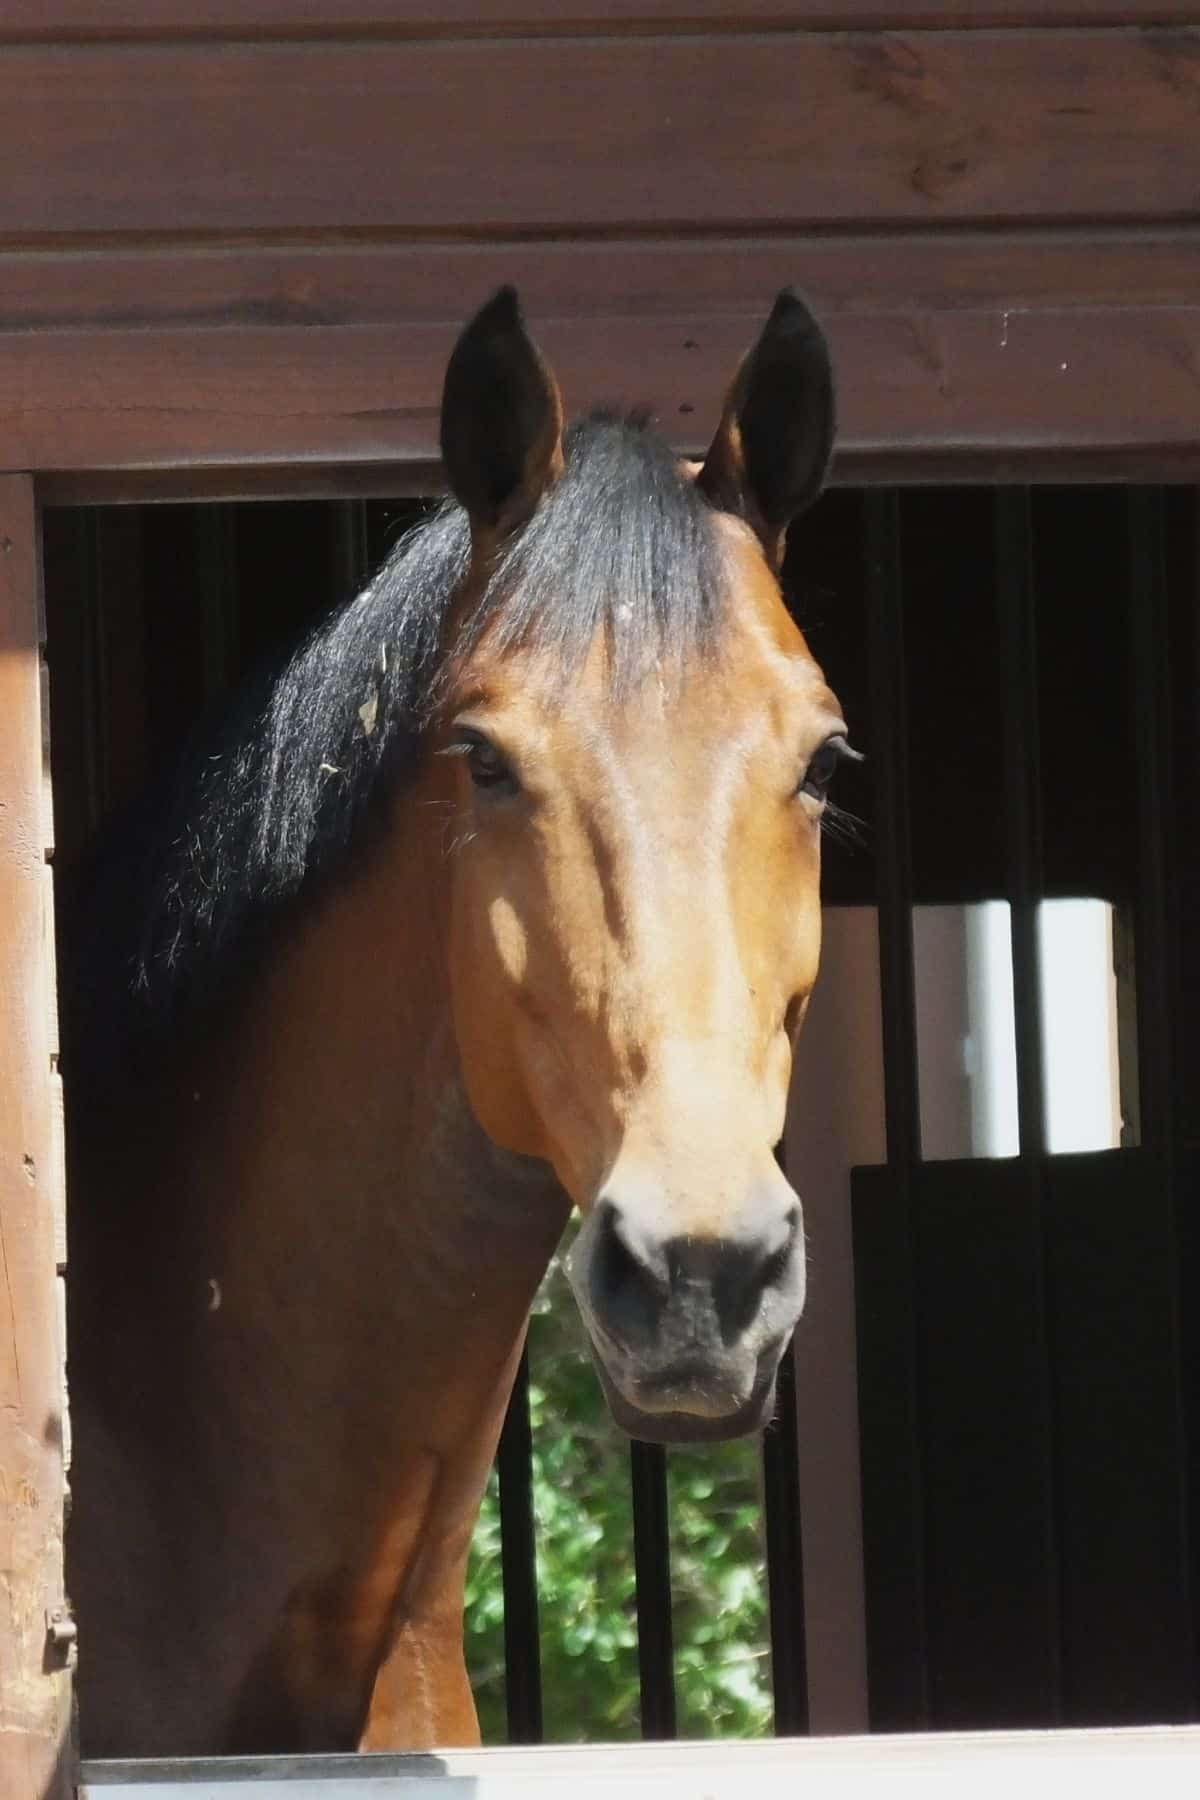 Brown horse with black mane lookin out from stall